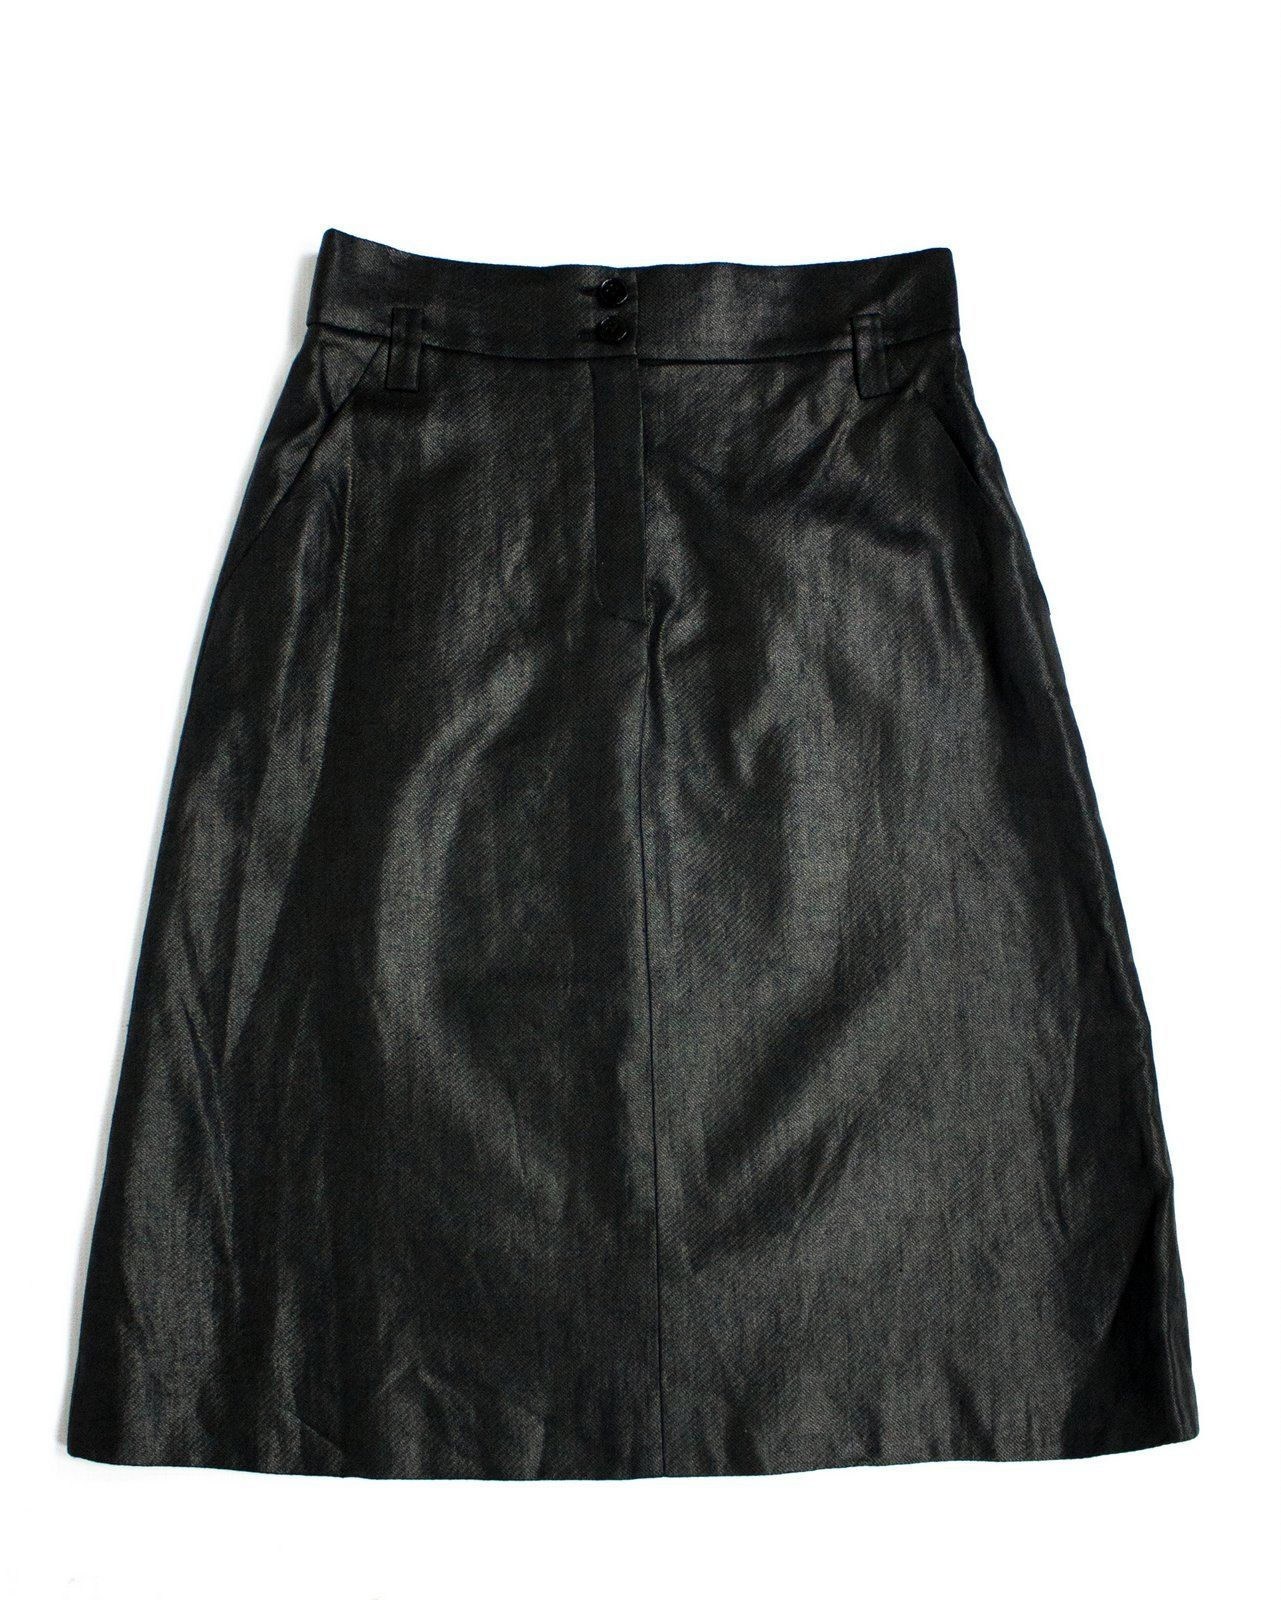 SONIA RYKIEL 100% linen A-line Black Skirt SIZE L, US 10 - secondfirst